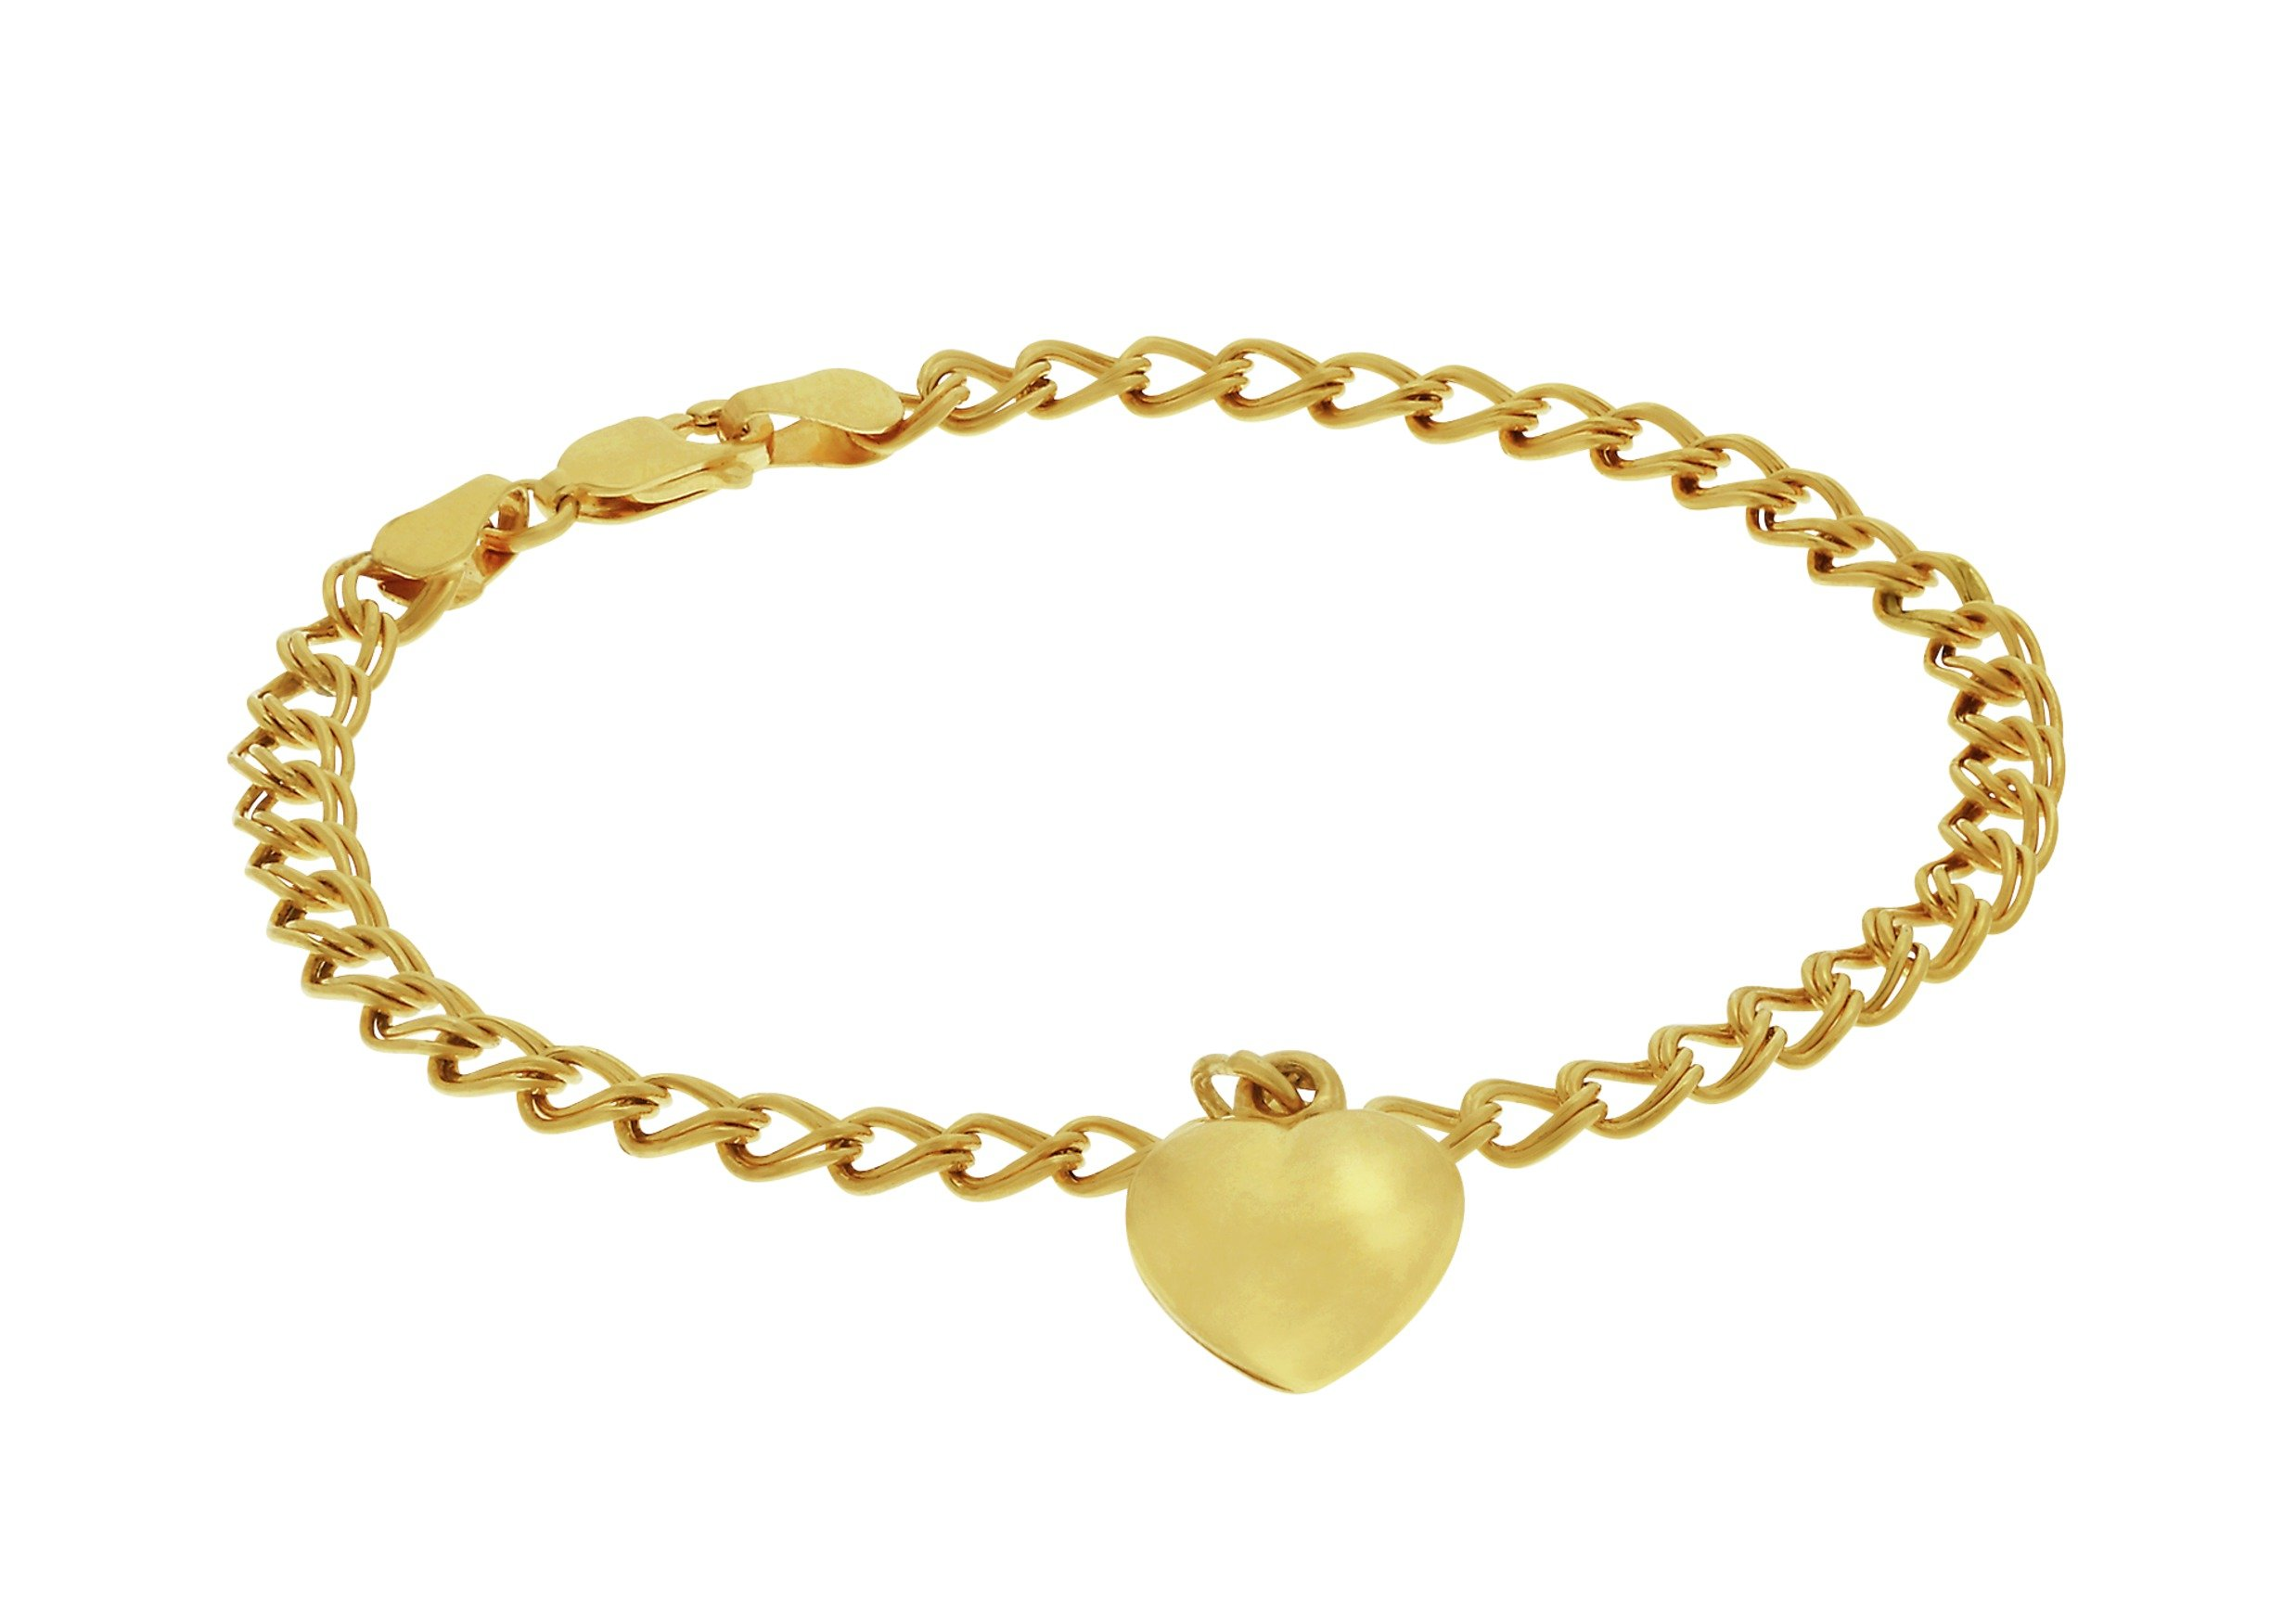 Revere 9ct Gold Plated Sterling Silver Heart Charm Bracelet